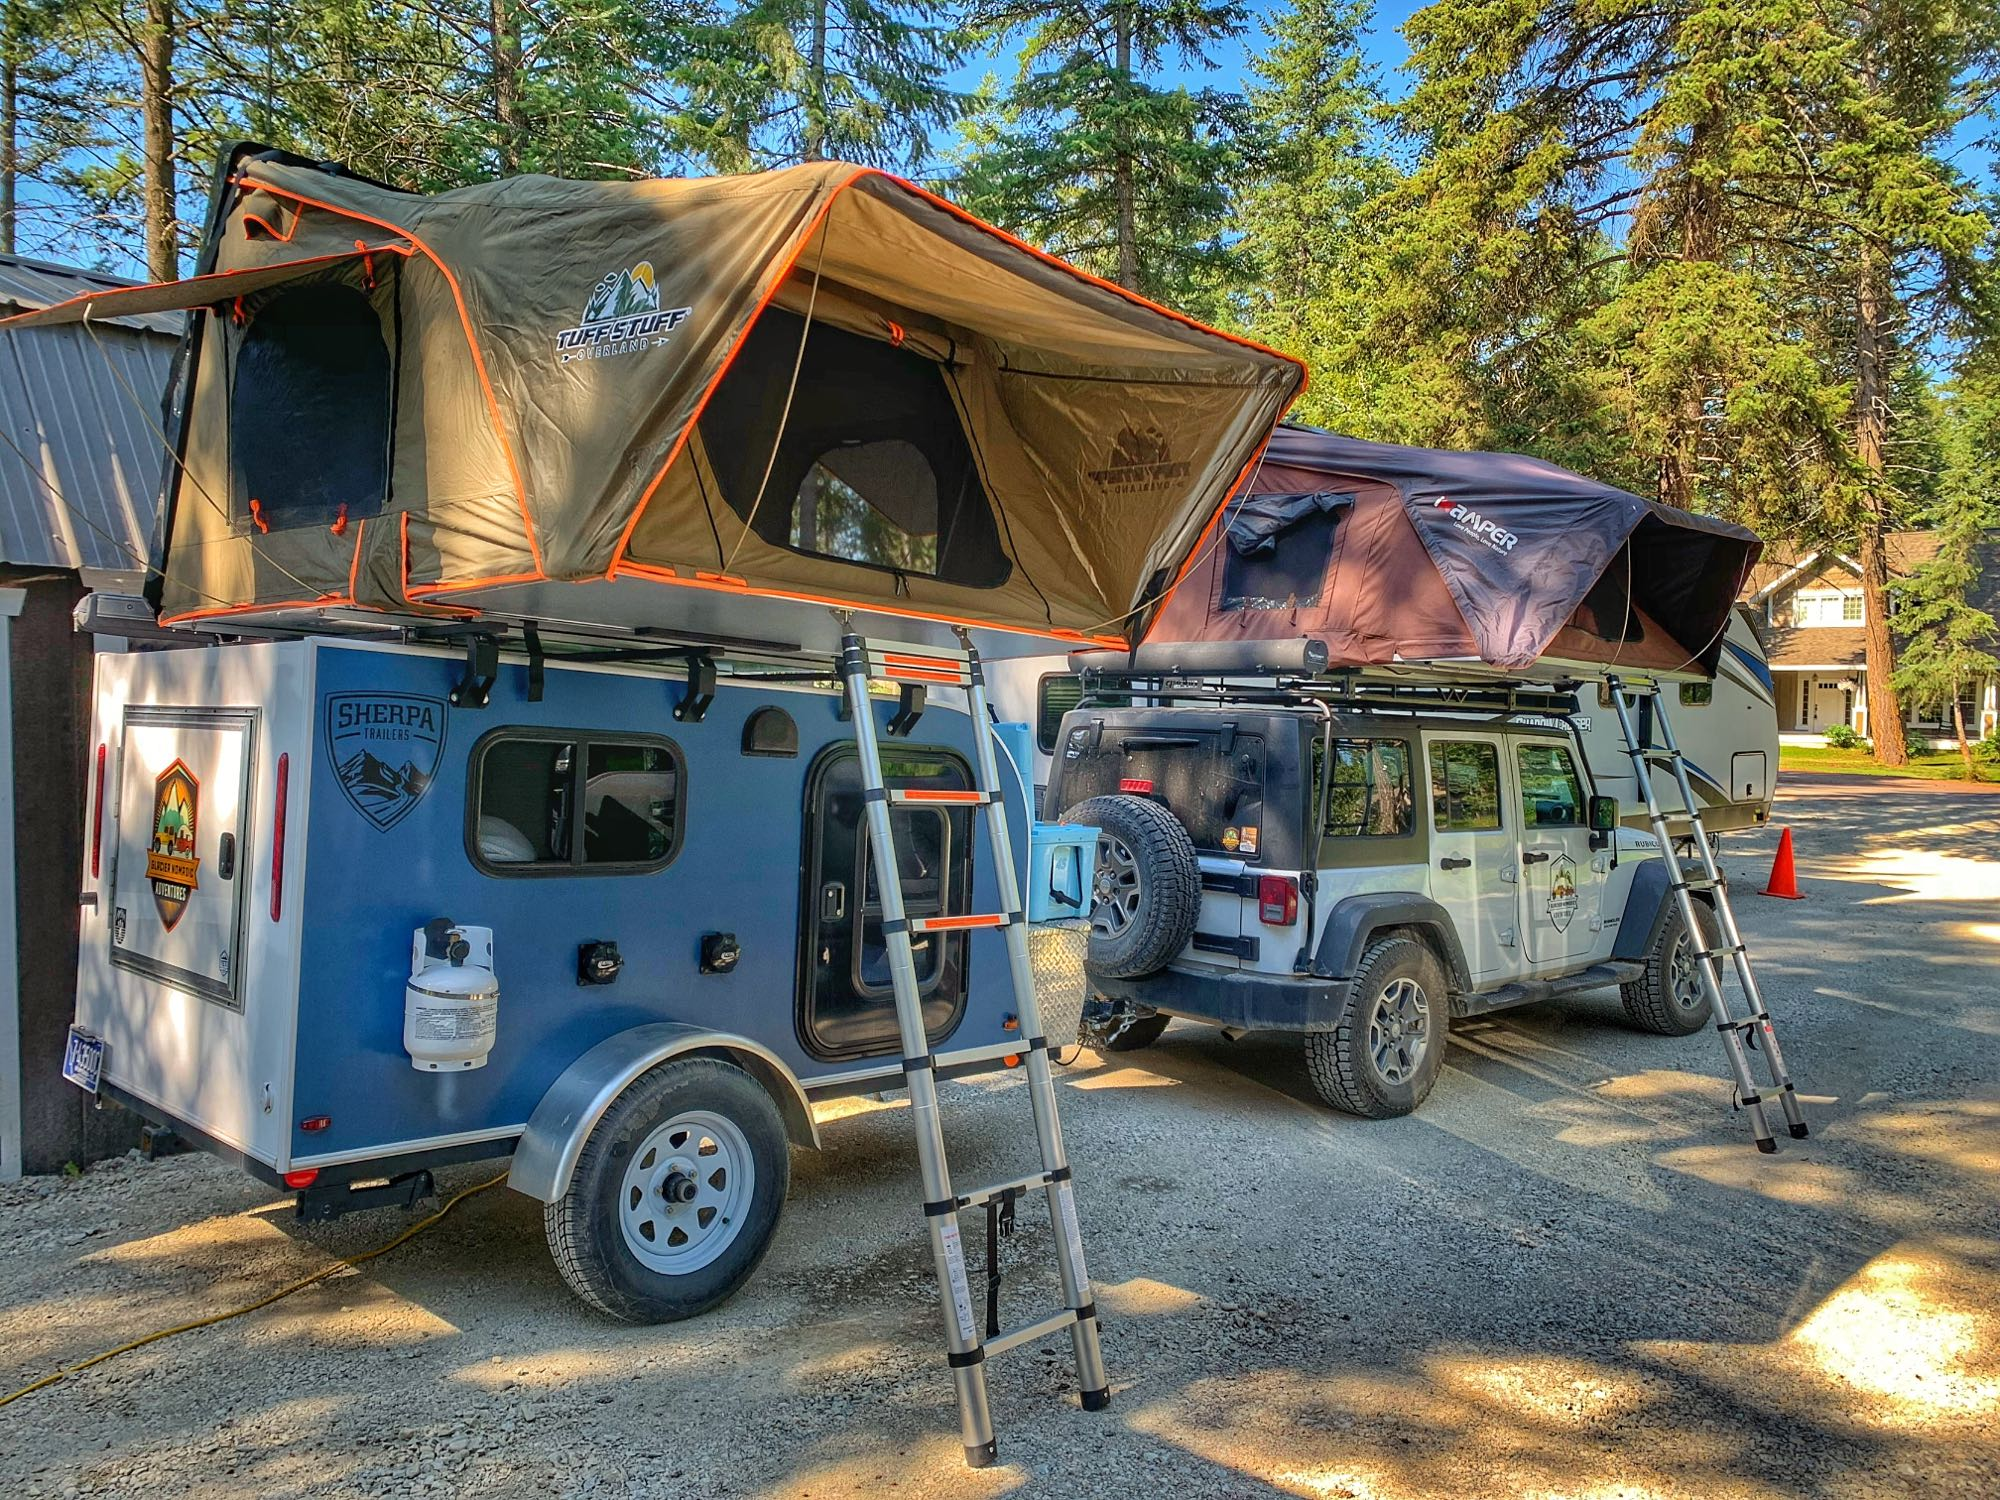 Roof Top Tent for additional sleeping room.. Camper Trailer Adventure (X2) 2018